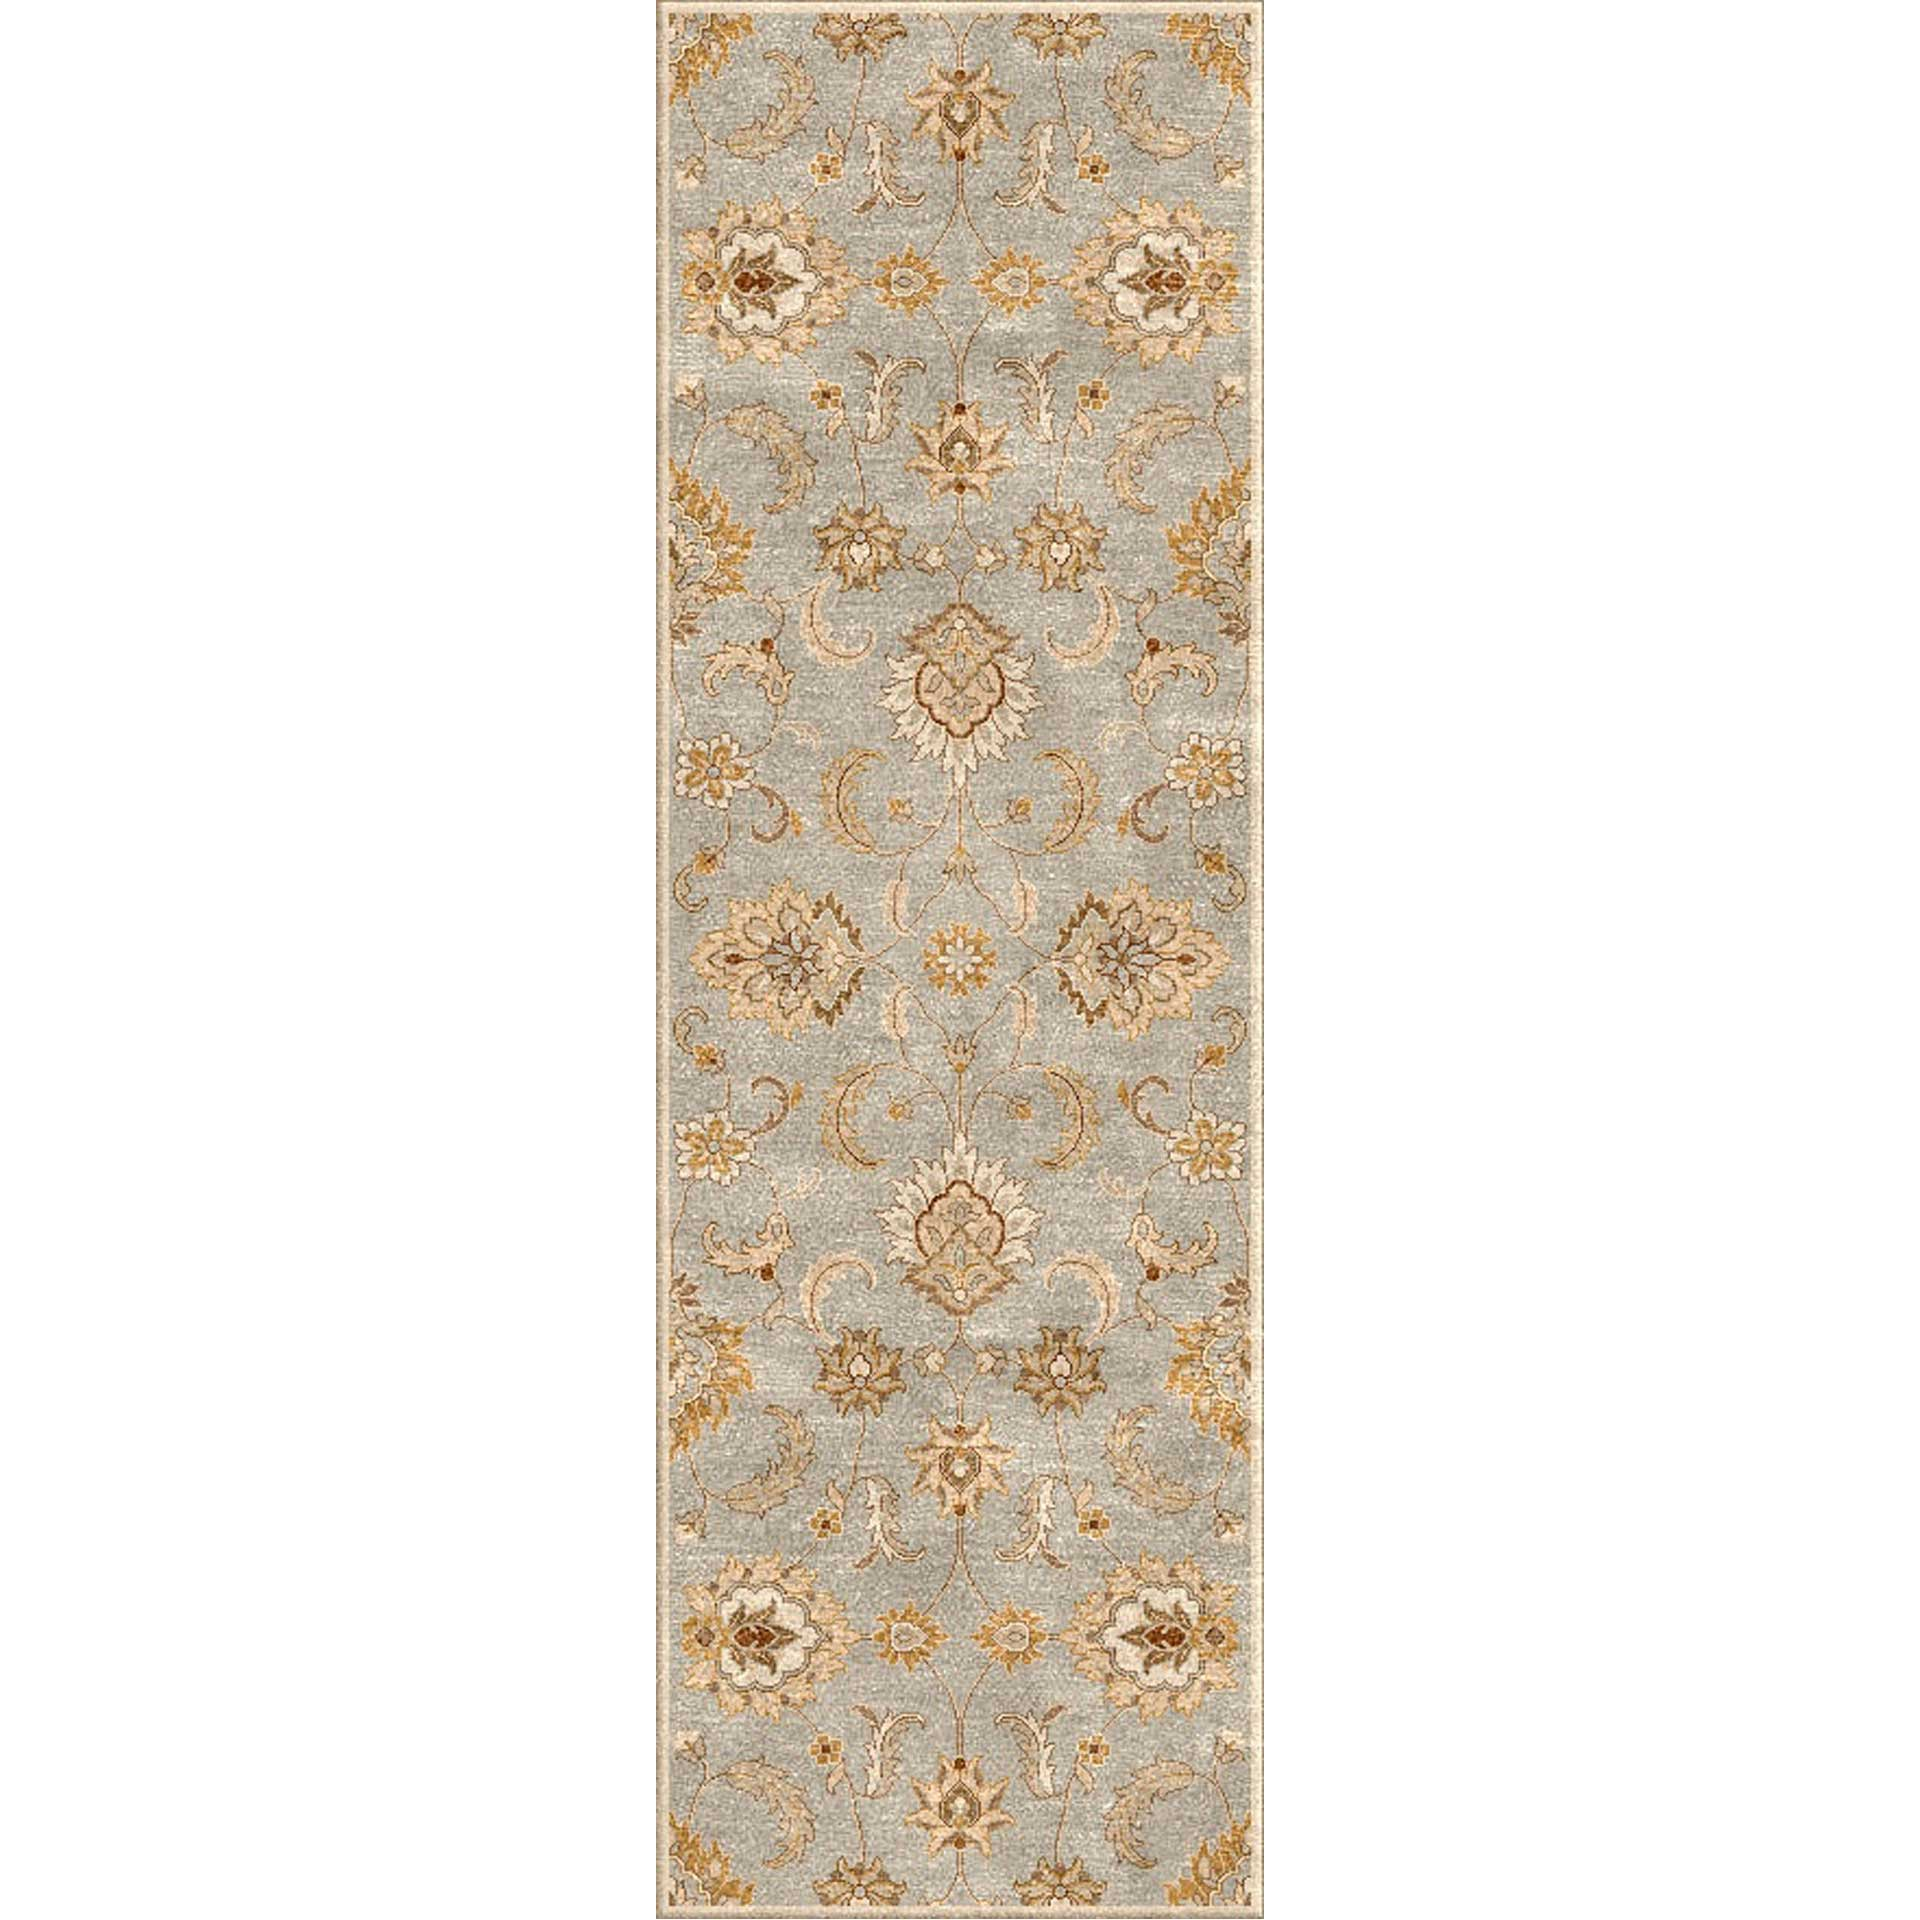 Mythos Abers Ice Blue/Antique White Runner Rug